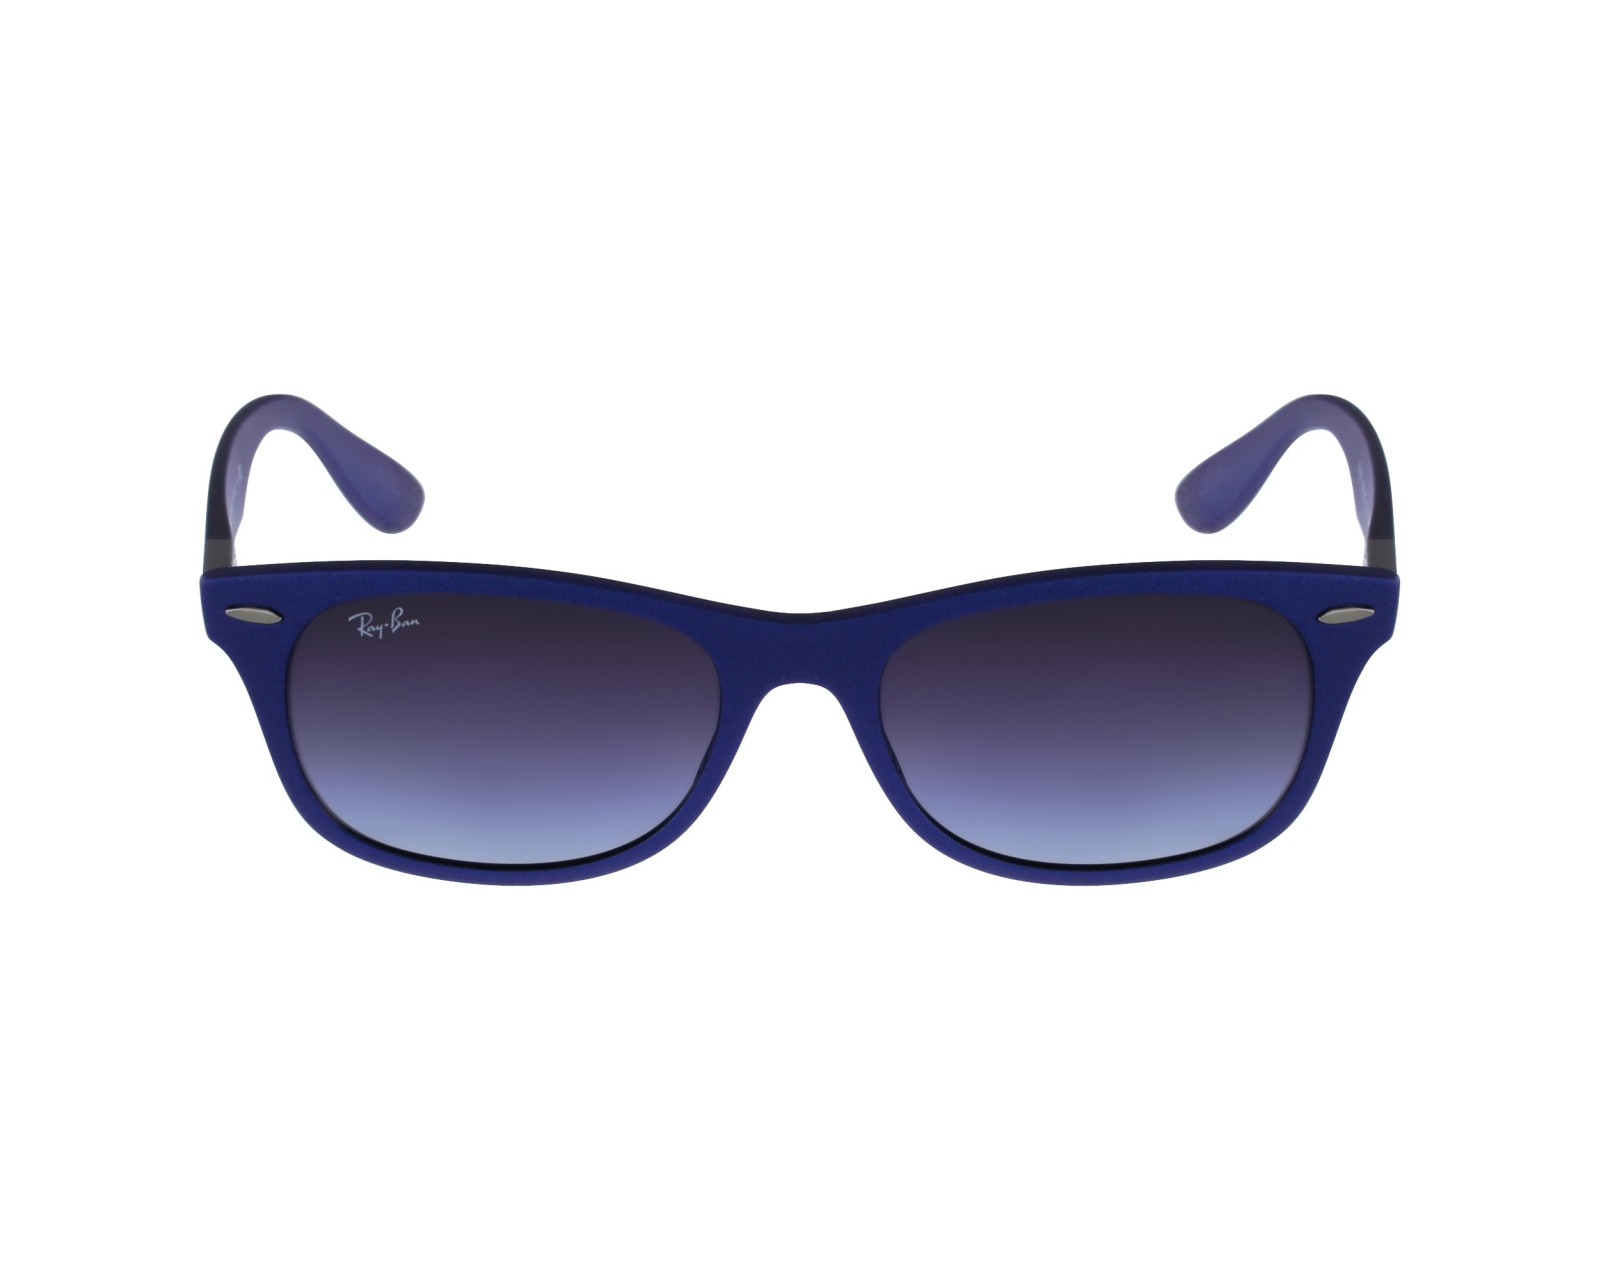 afe977b972 Sunglasses Ray-Ban RB-4207 6015 8G 55-17 Blue profile view